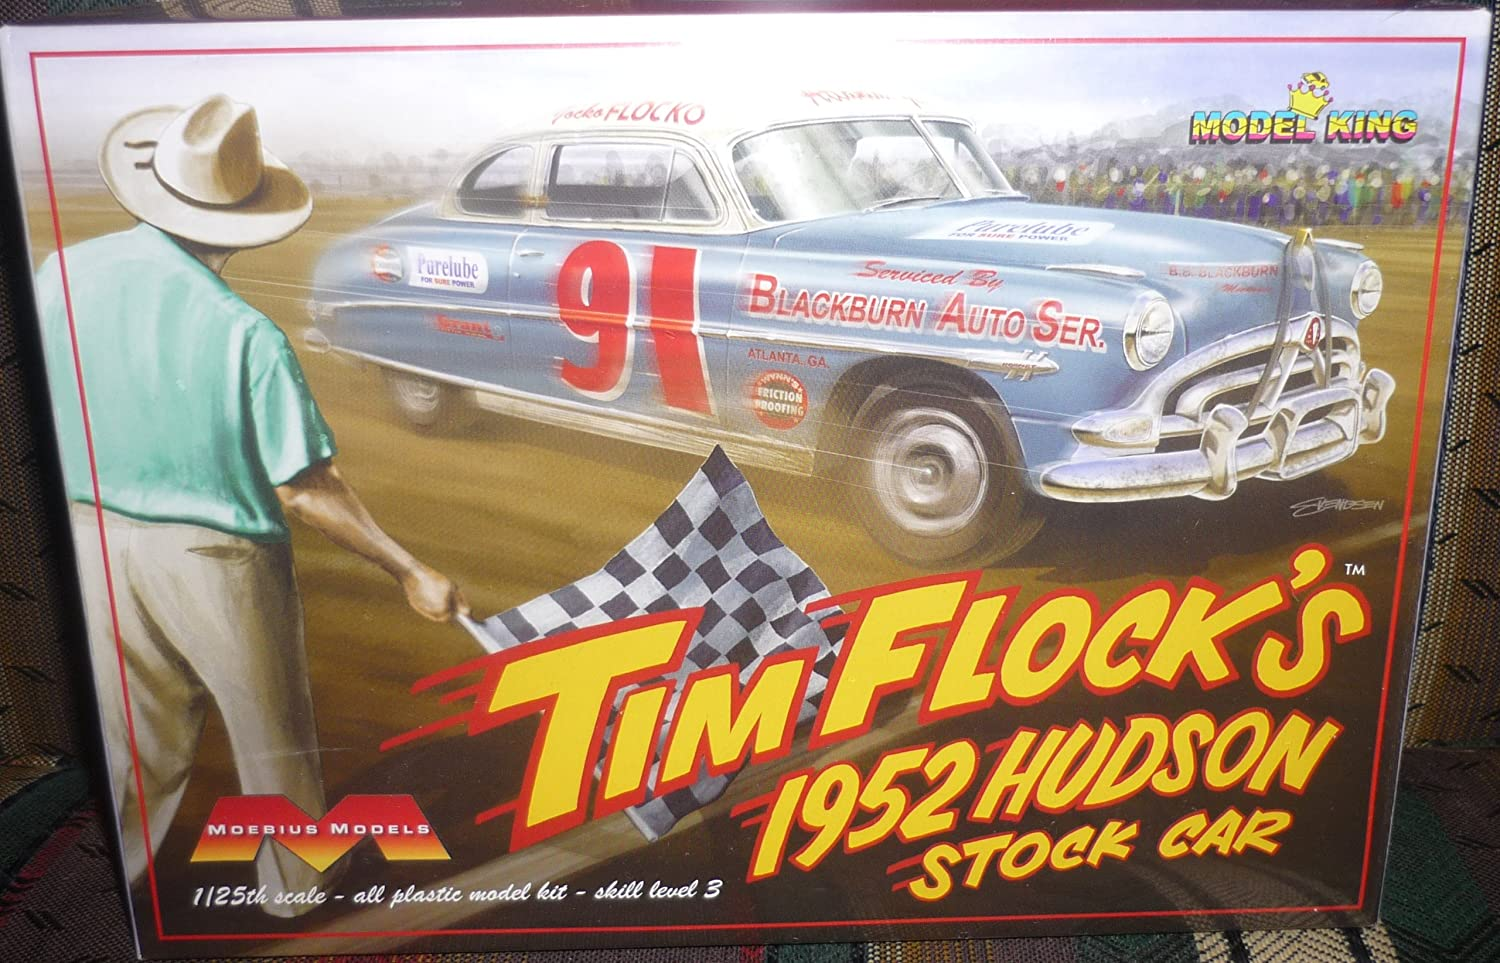 Moebius #1202 Models Tim Flock's 1952 Hudson Stock Car 1/25th Scale Model Kit,Needs Asembly by Moebius